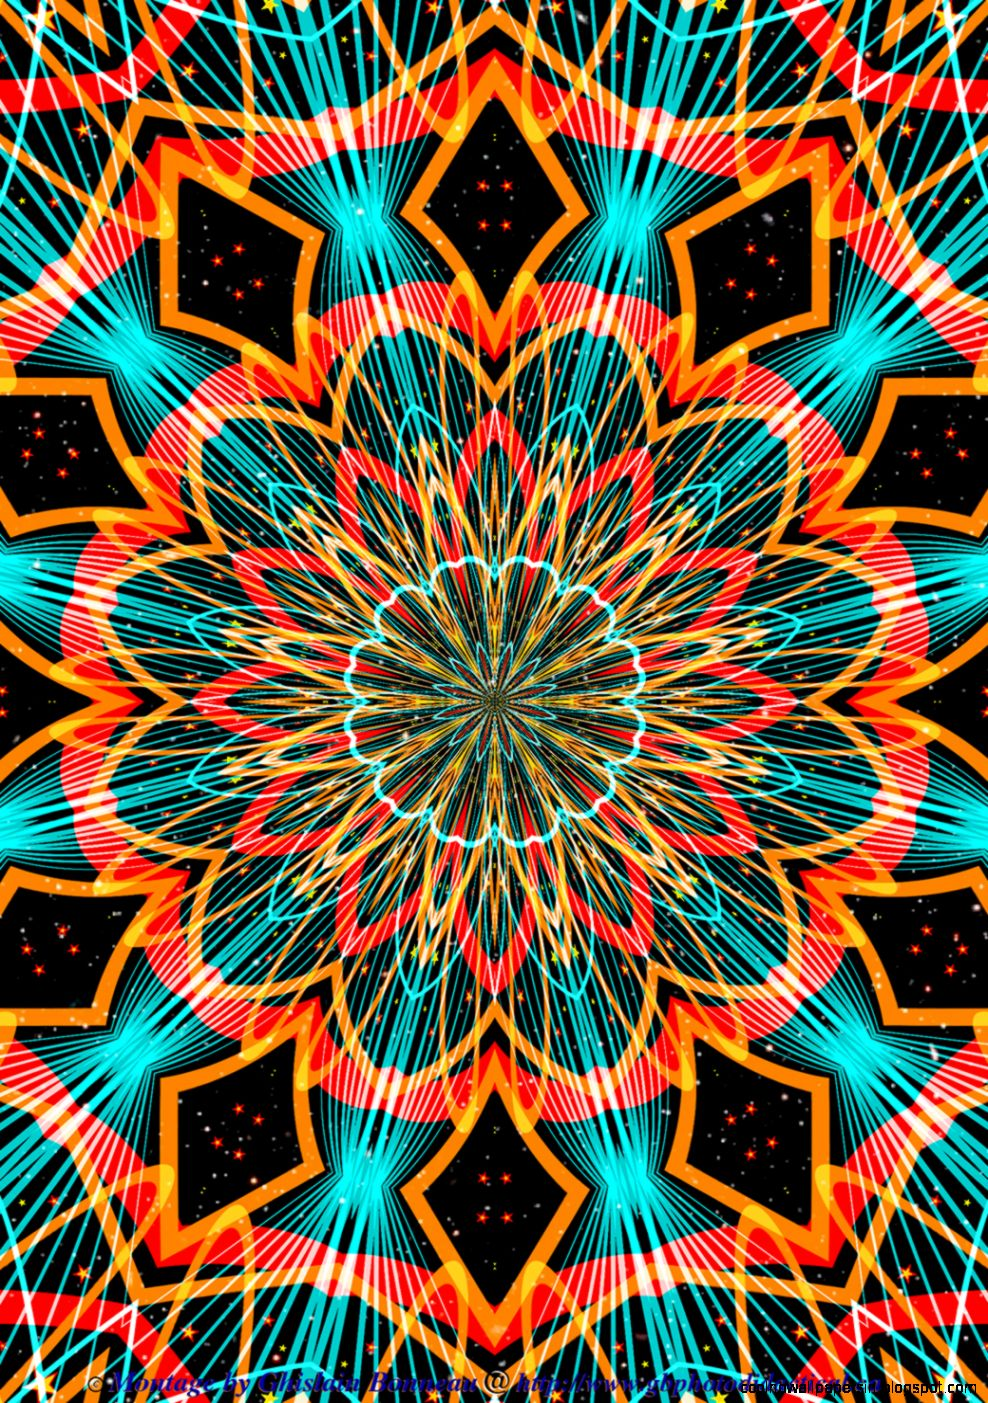 Popular   Wallpaper Home Screen Trippy - trippy-iphone-hd-backgrounds-hd-wallpapers-fit  Image_46378.jpg